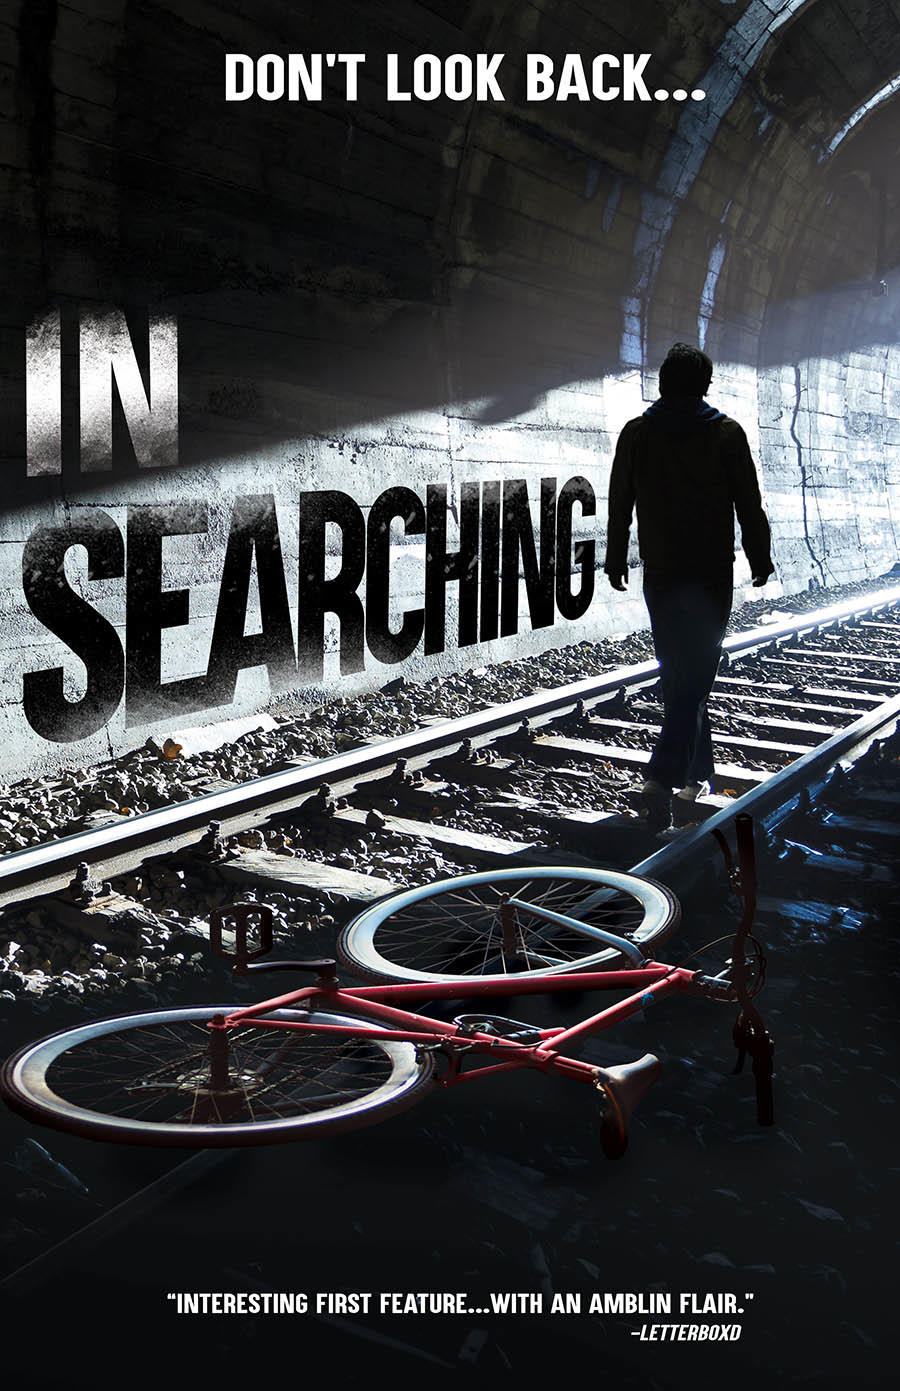 In Searching poster art